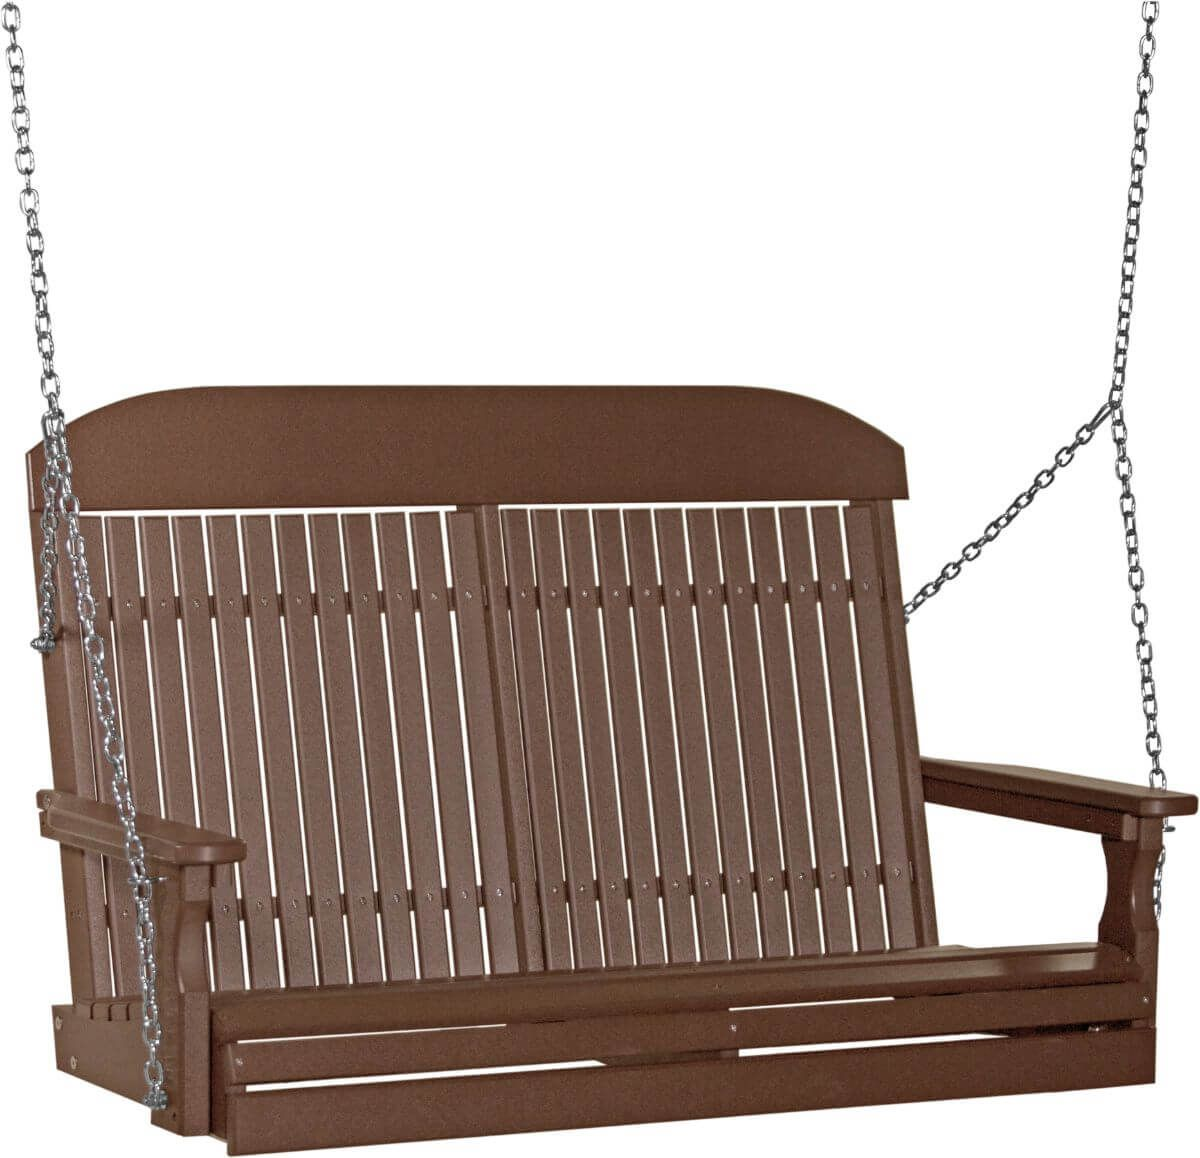 Chestnut Brown Stockton Porch Swing